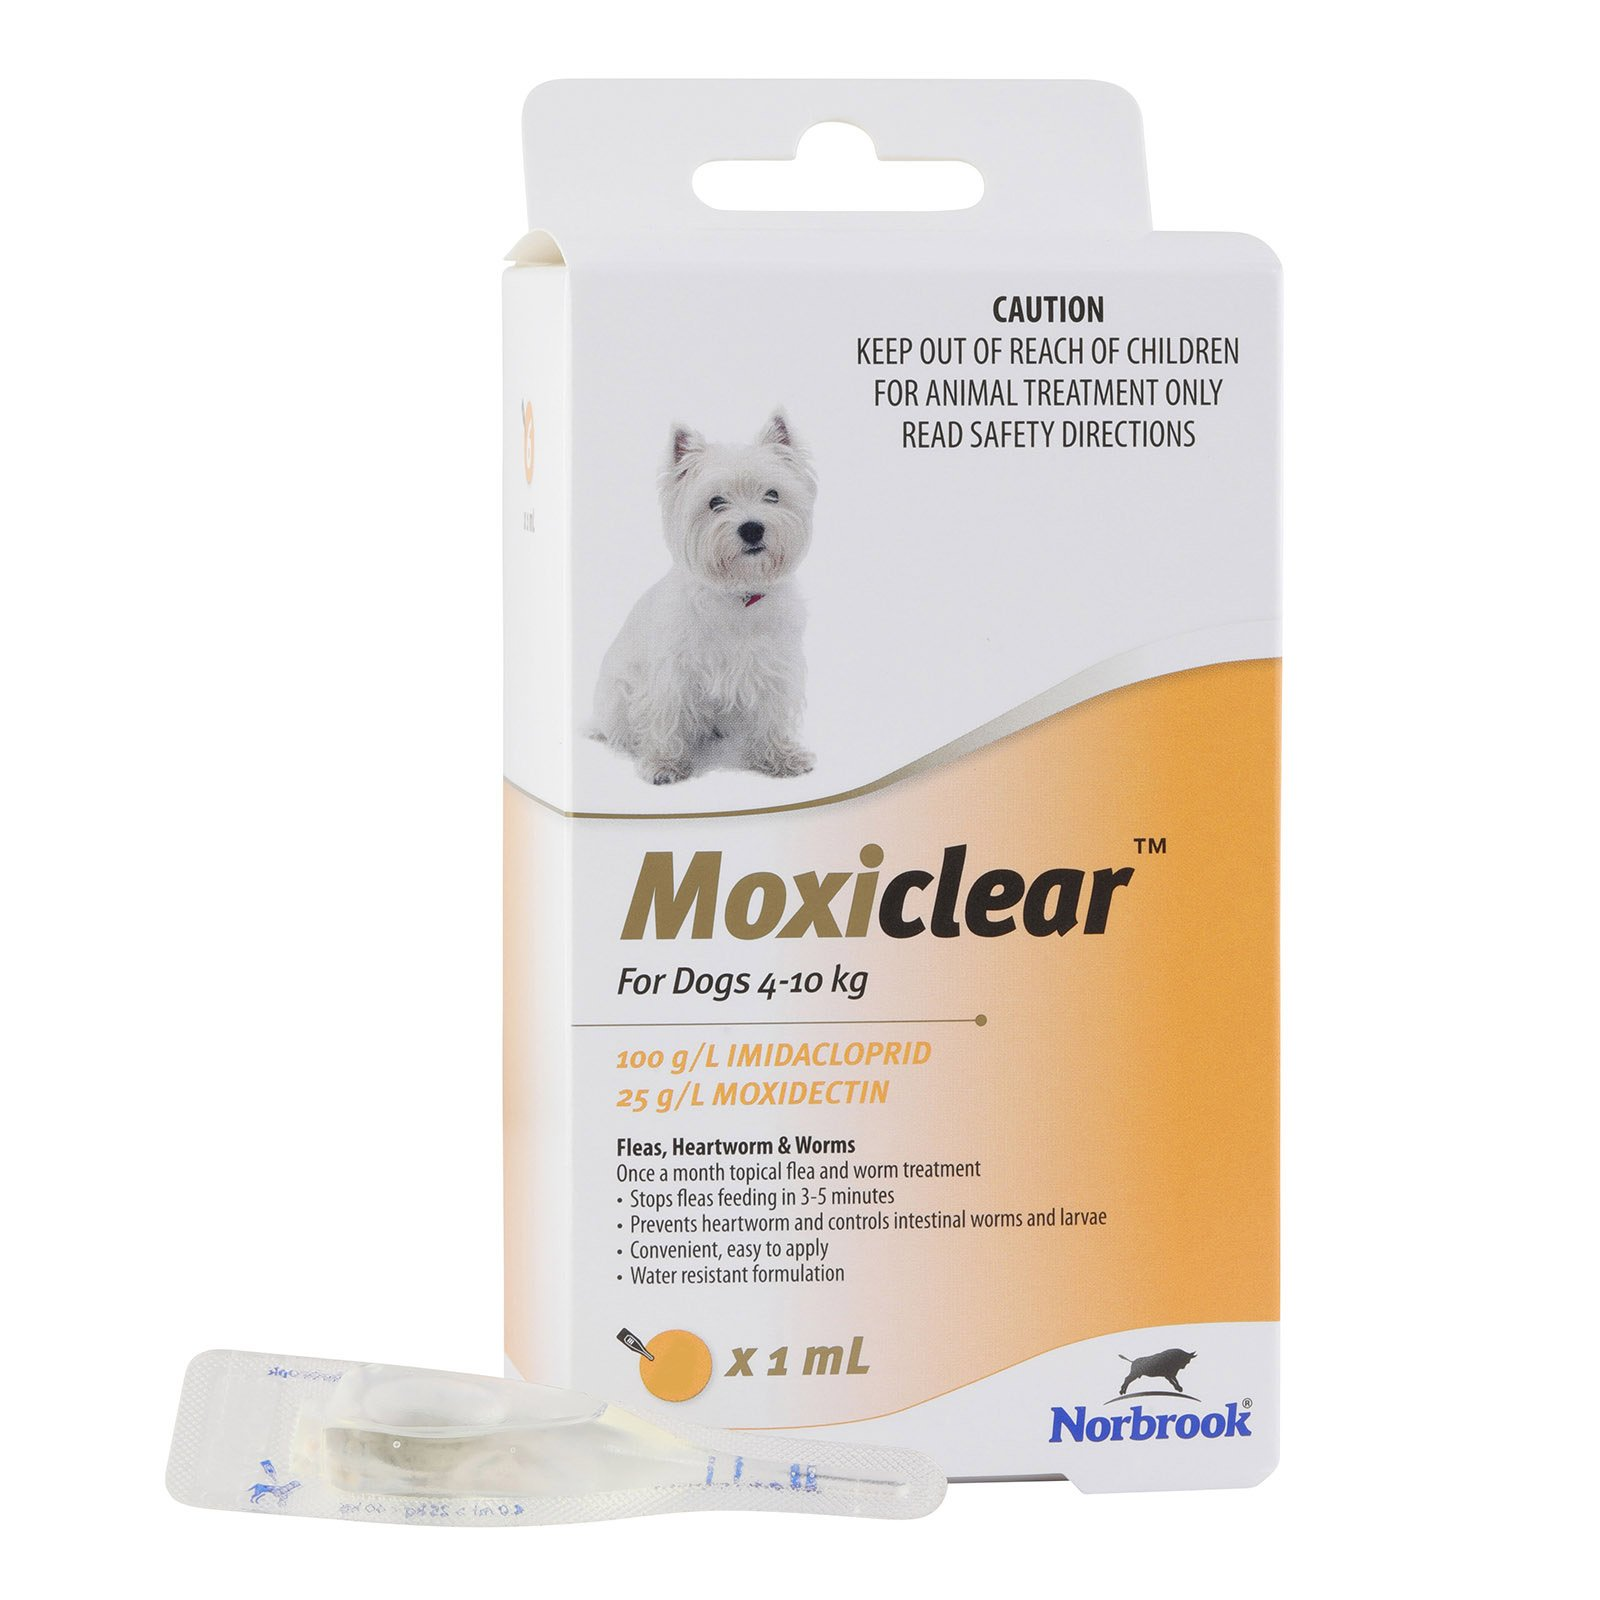 636996660324708994Moxiclear-for-Dogs-4-10kg-yellow.jpg